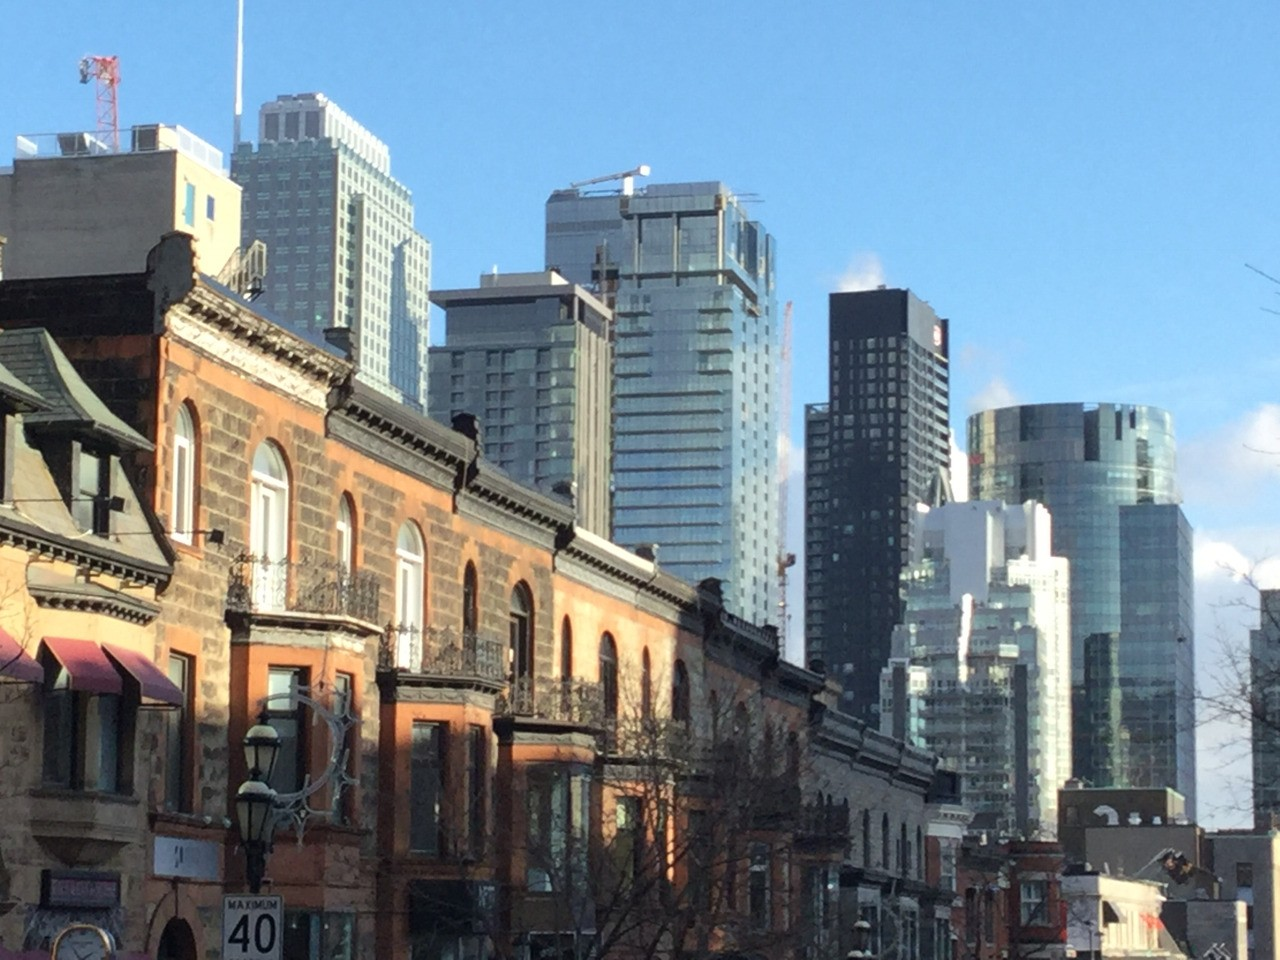 A view from Crescent Street where you'll find a number of restaurants and bars.